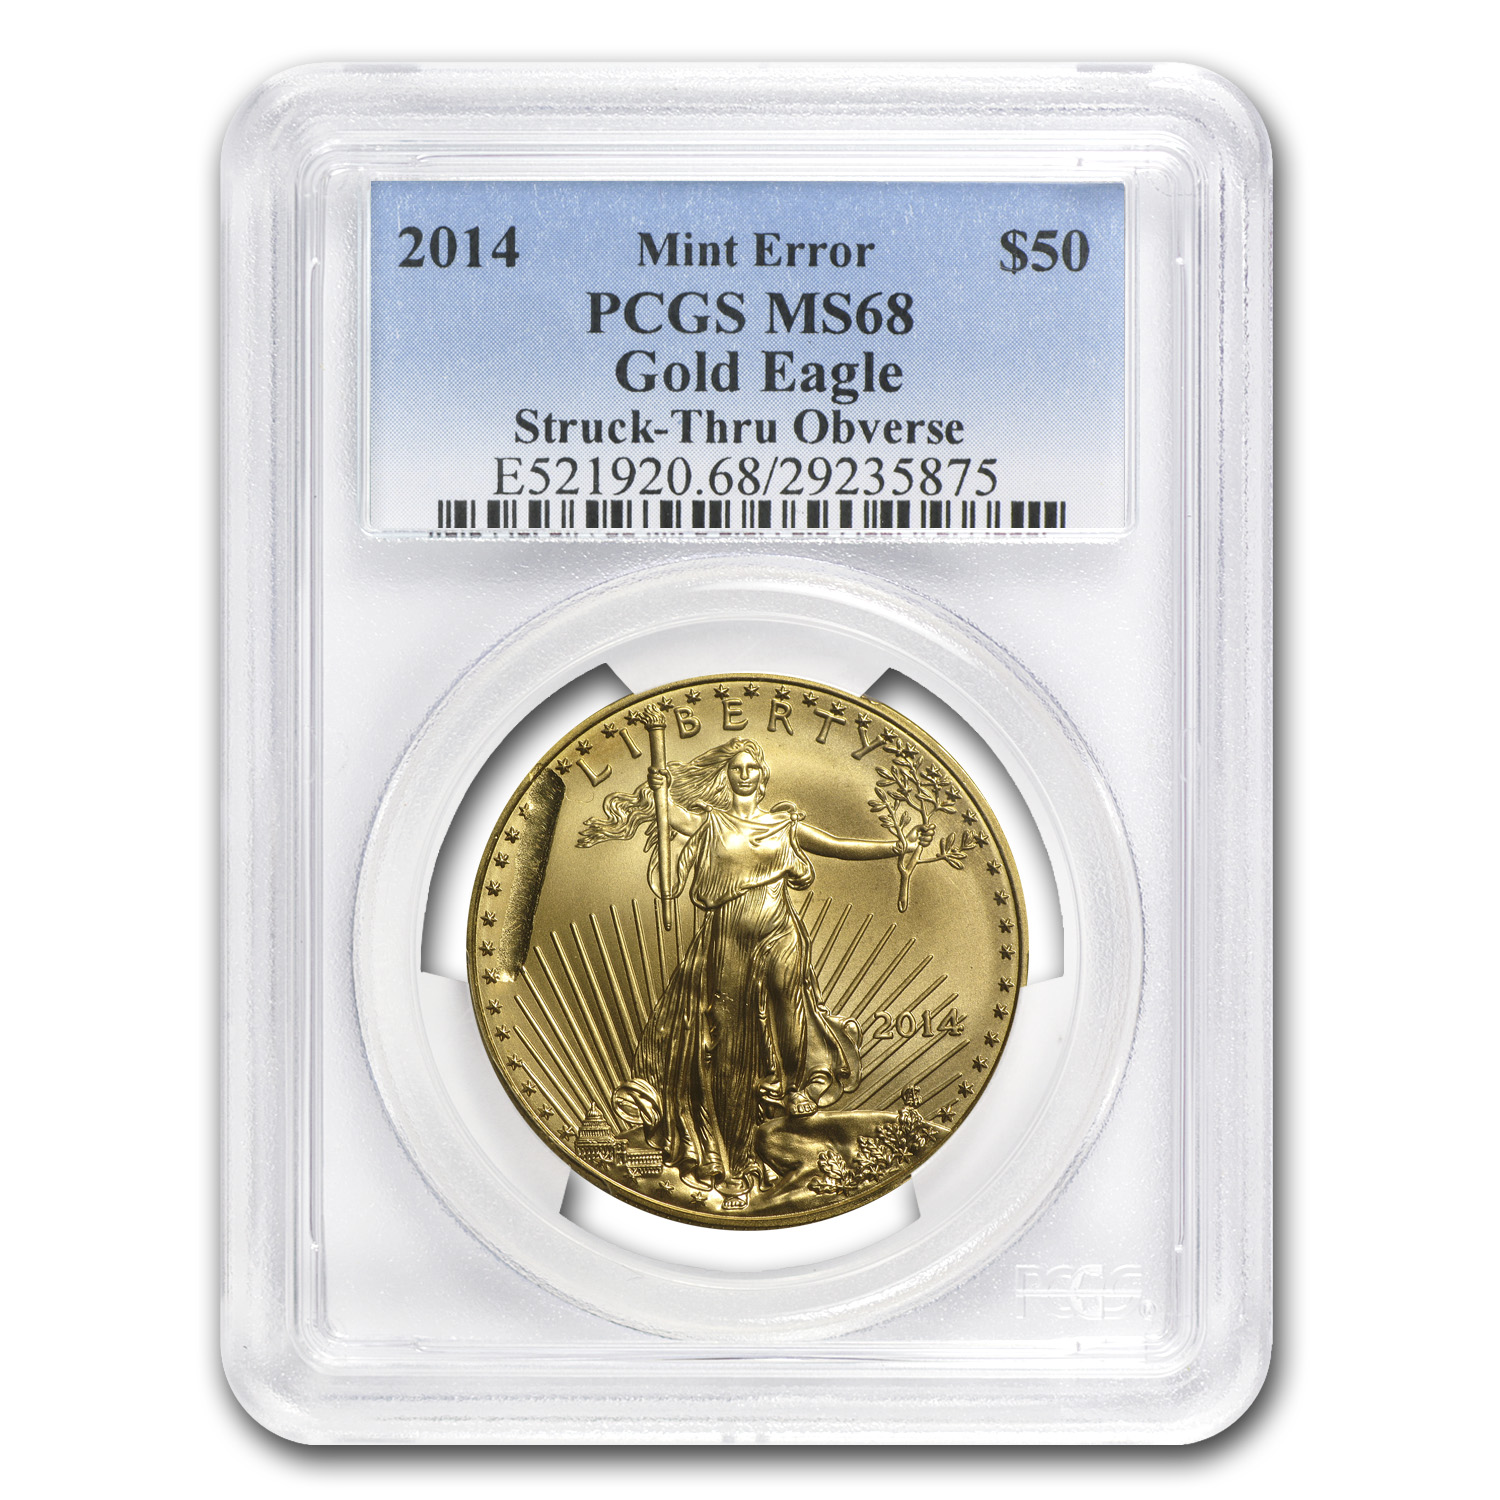 2014 1 oz Gold American Eagle Mint Error MS-69 PCGS